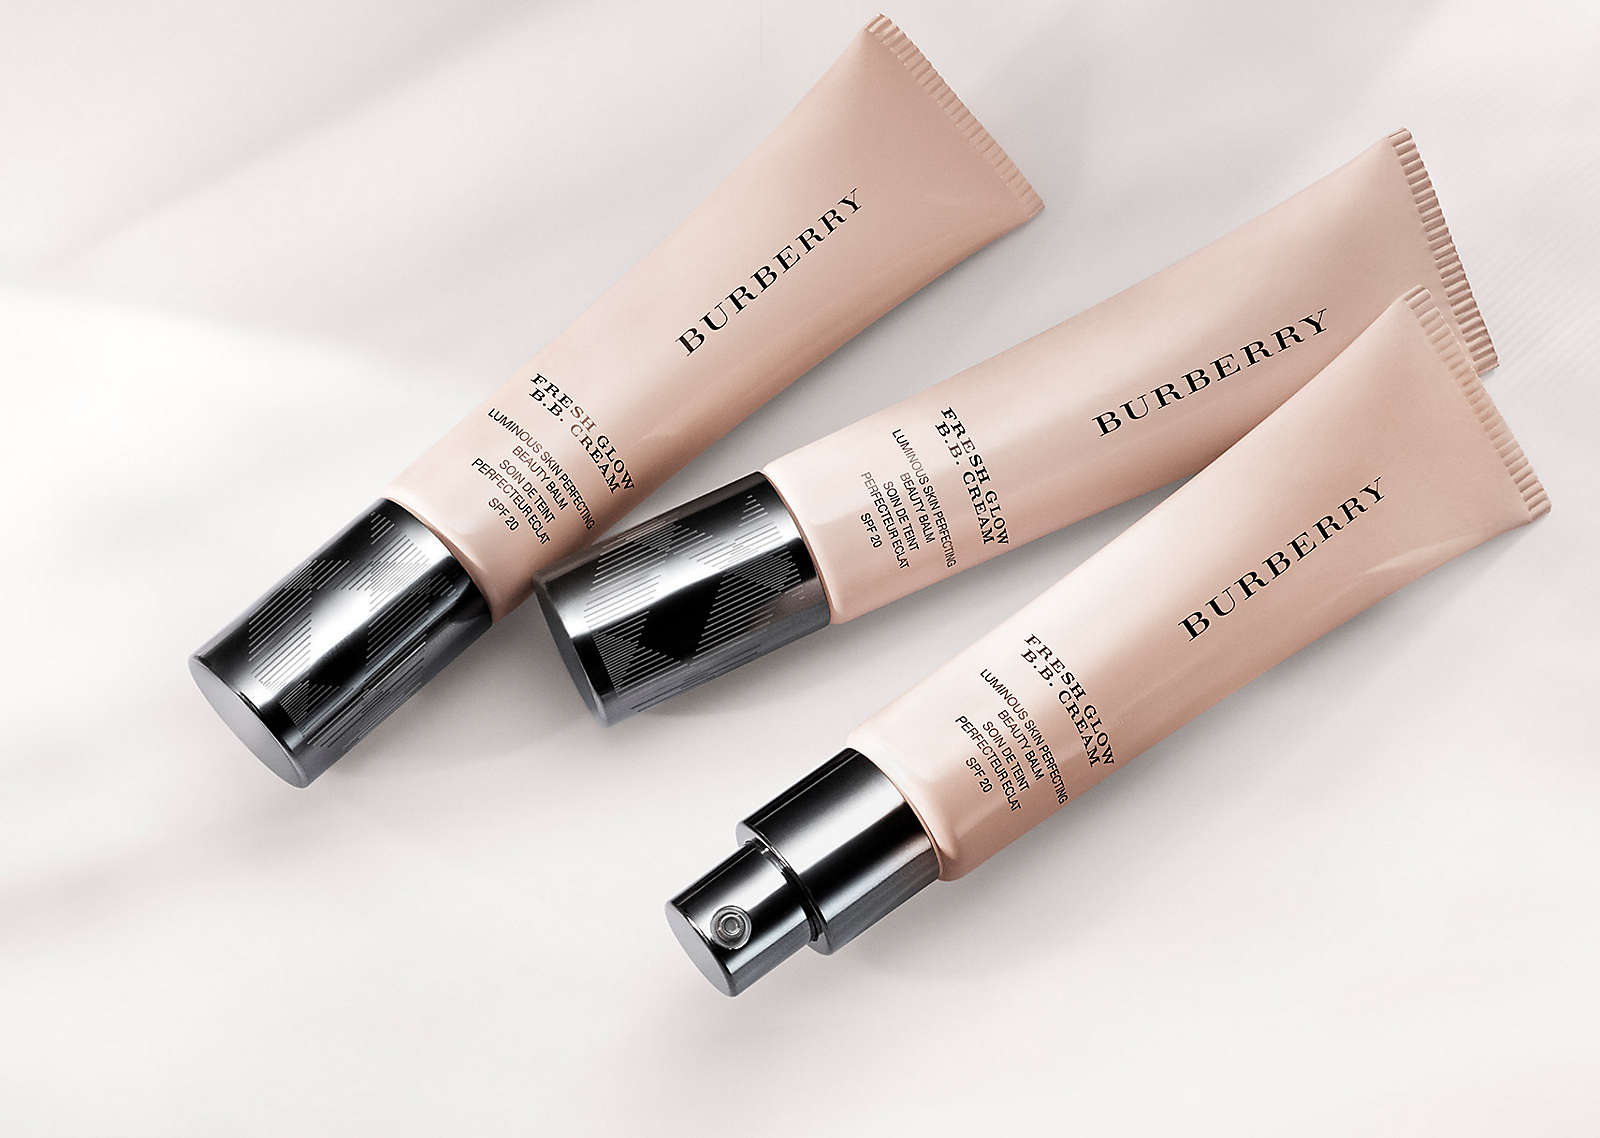 The New Fresh Glow Burberry BB Cream 02